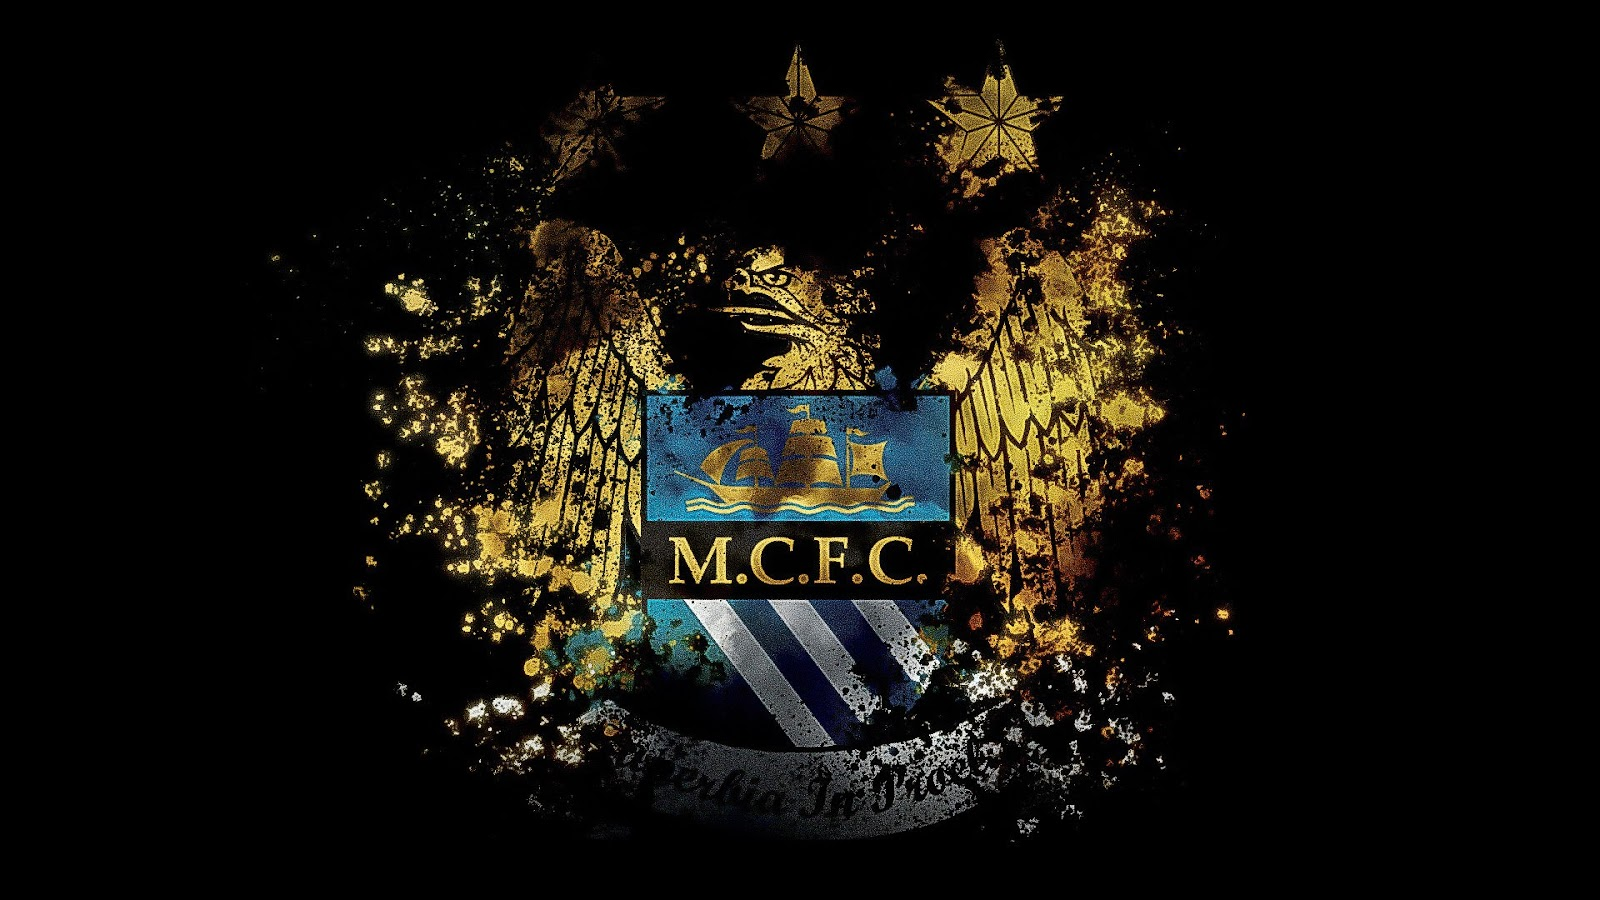 manchester city football club hd wallpapers manchester united logo manchester united logo images